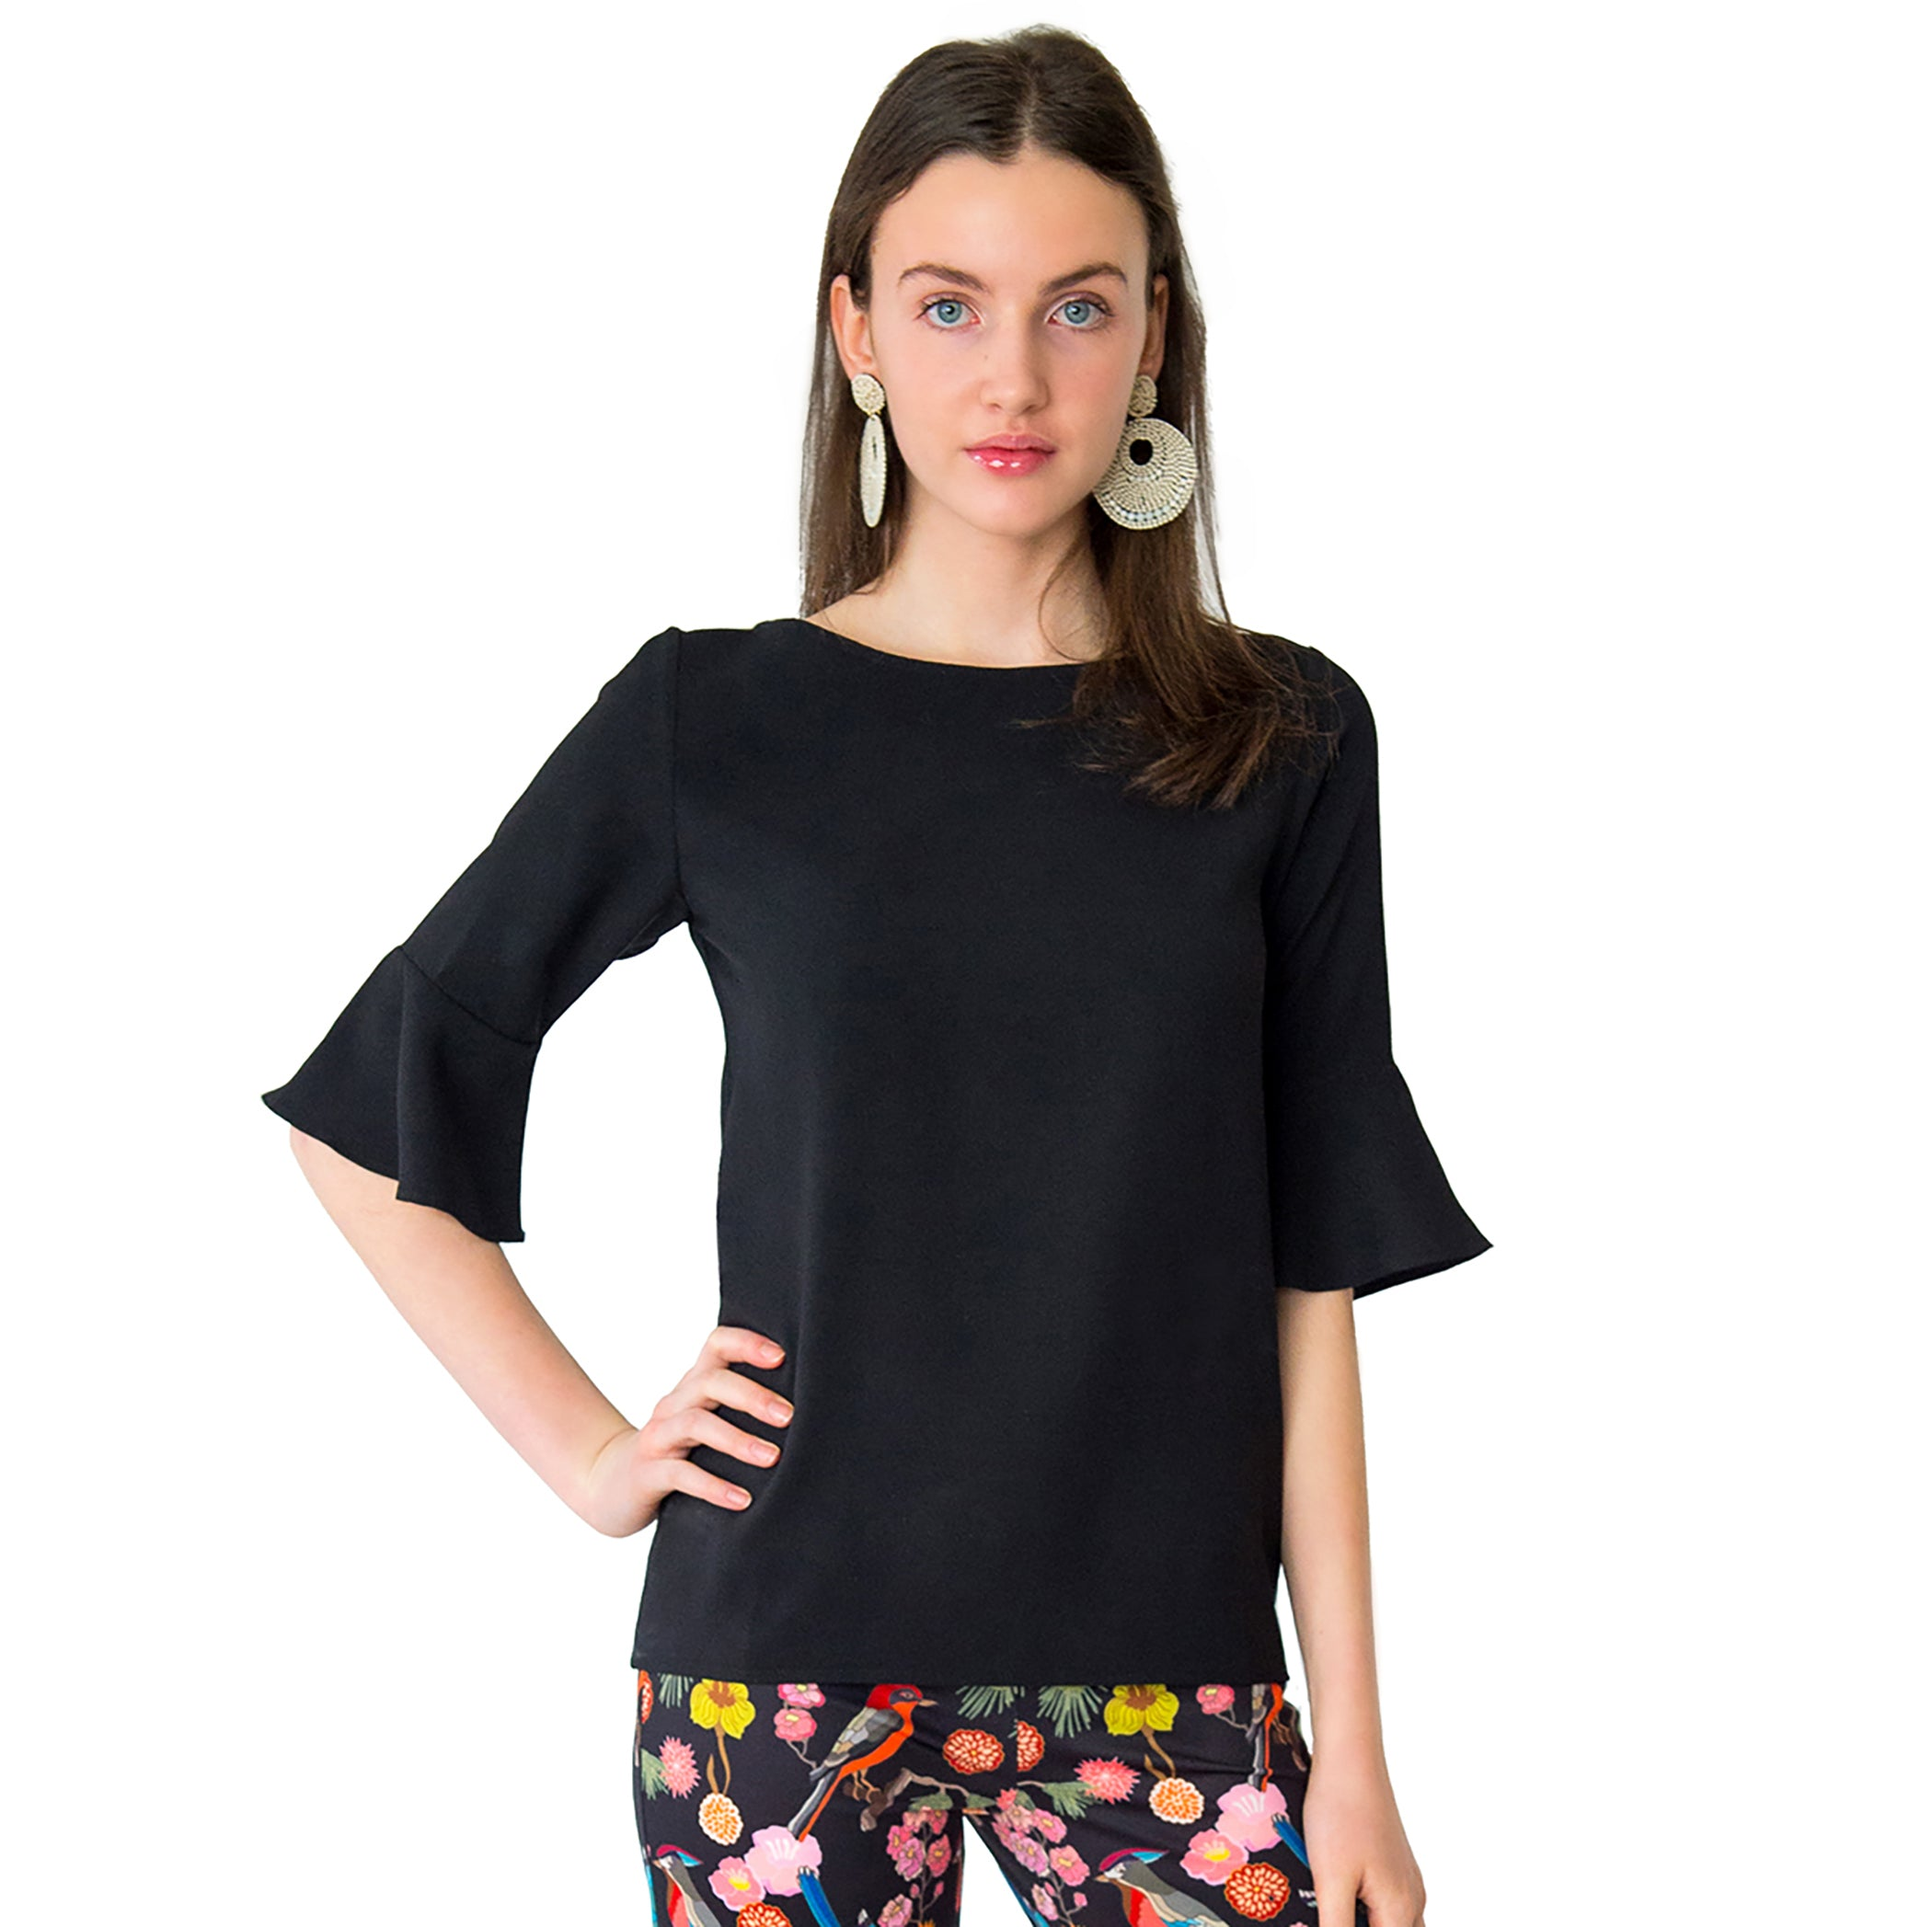 Caroline Blouse in Black - Elizabeth Ackerman New York